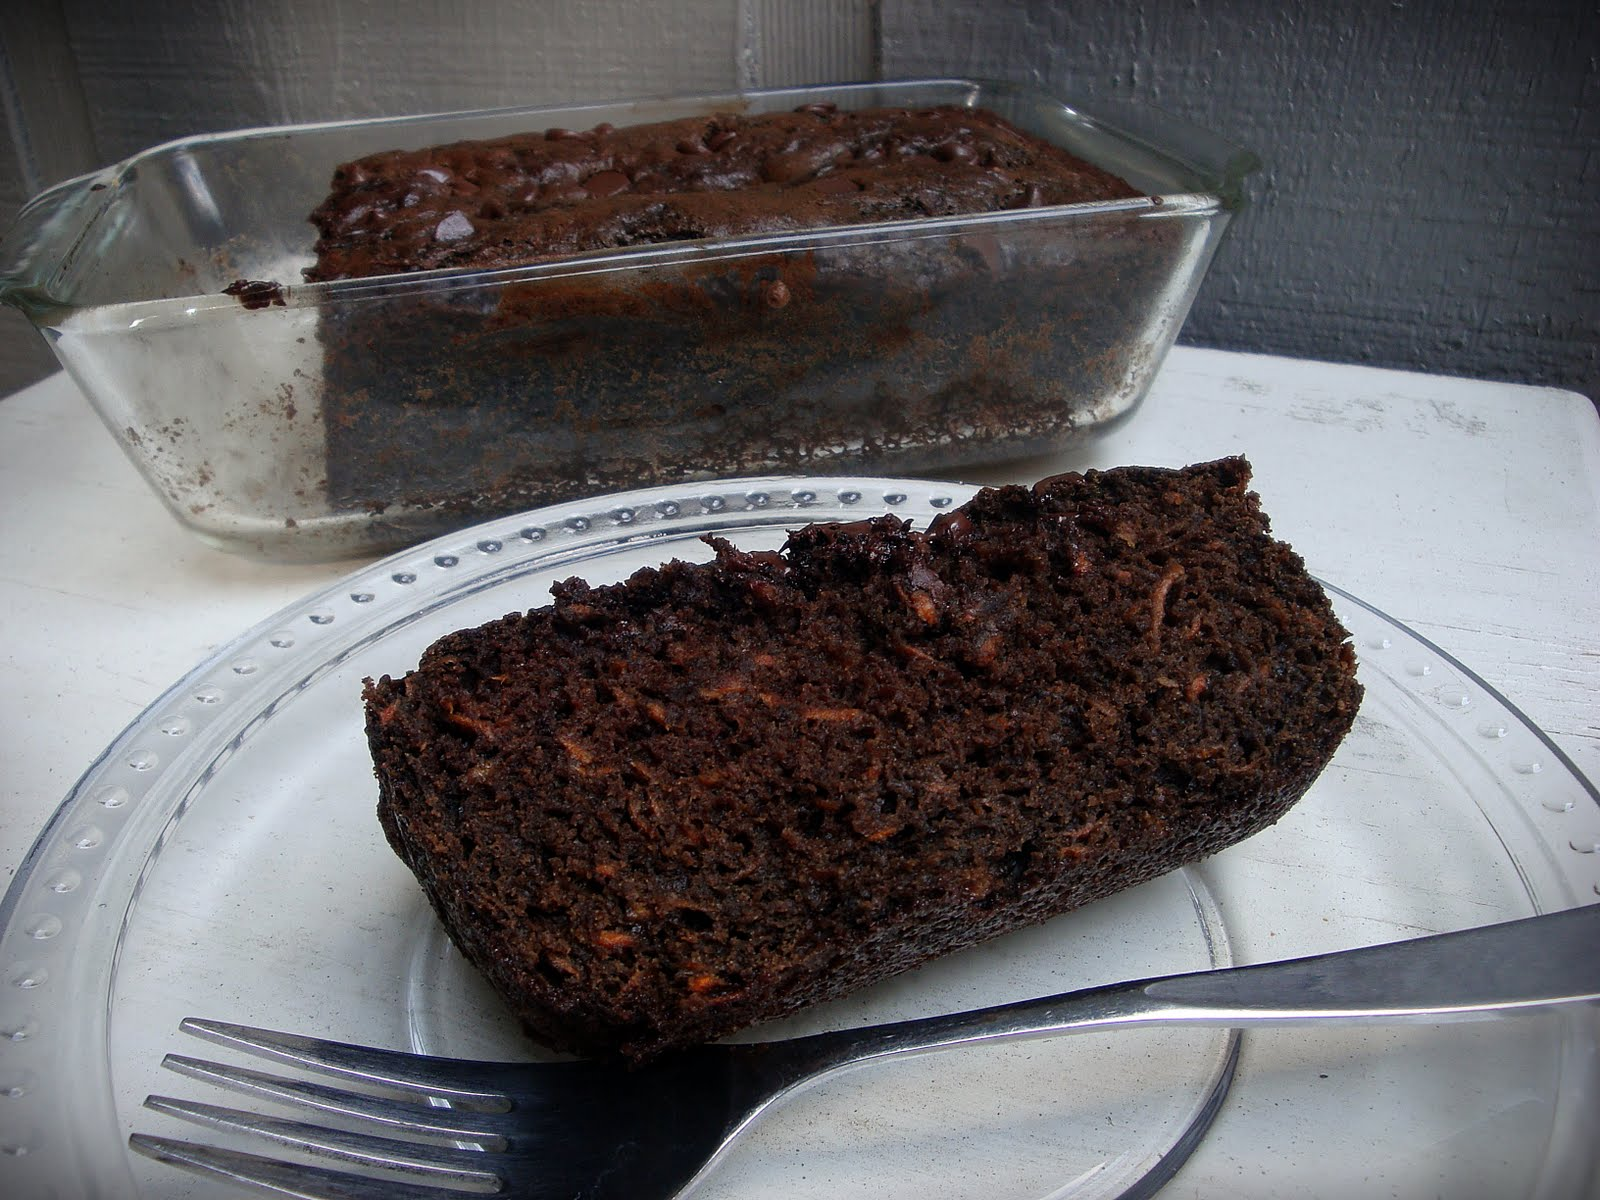 Carrot Cake Recipe Uk Healthy: Kaitlyn Cooks: Healthier Chocolate Carrot Cake